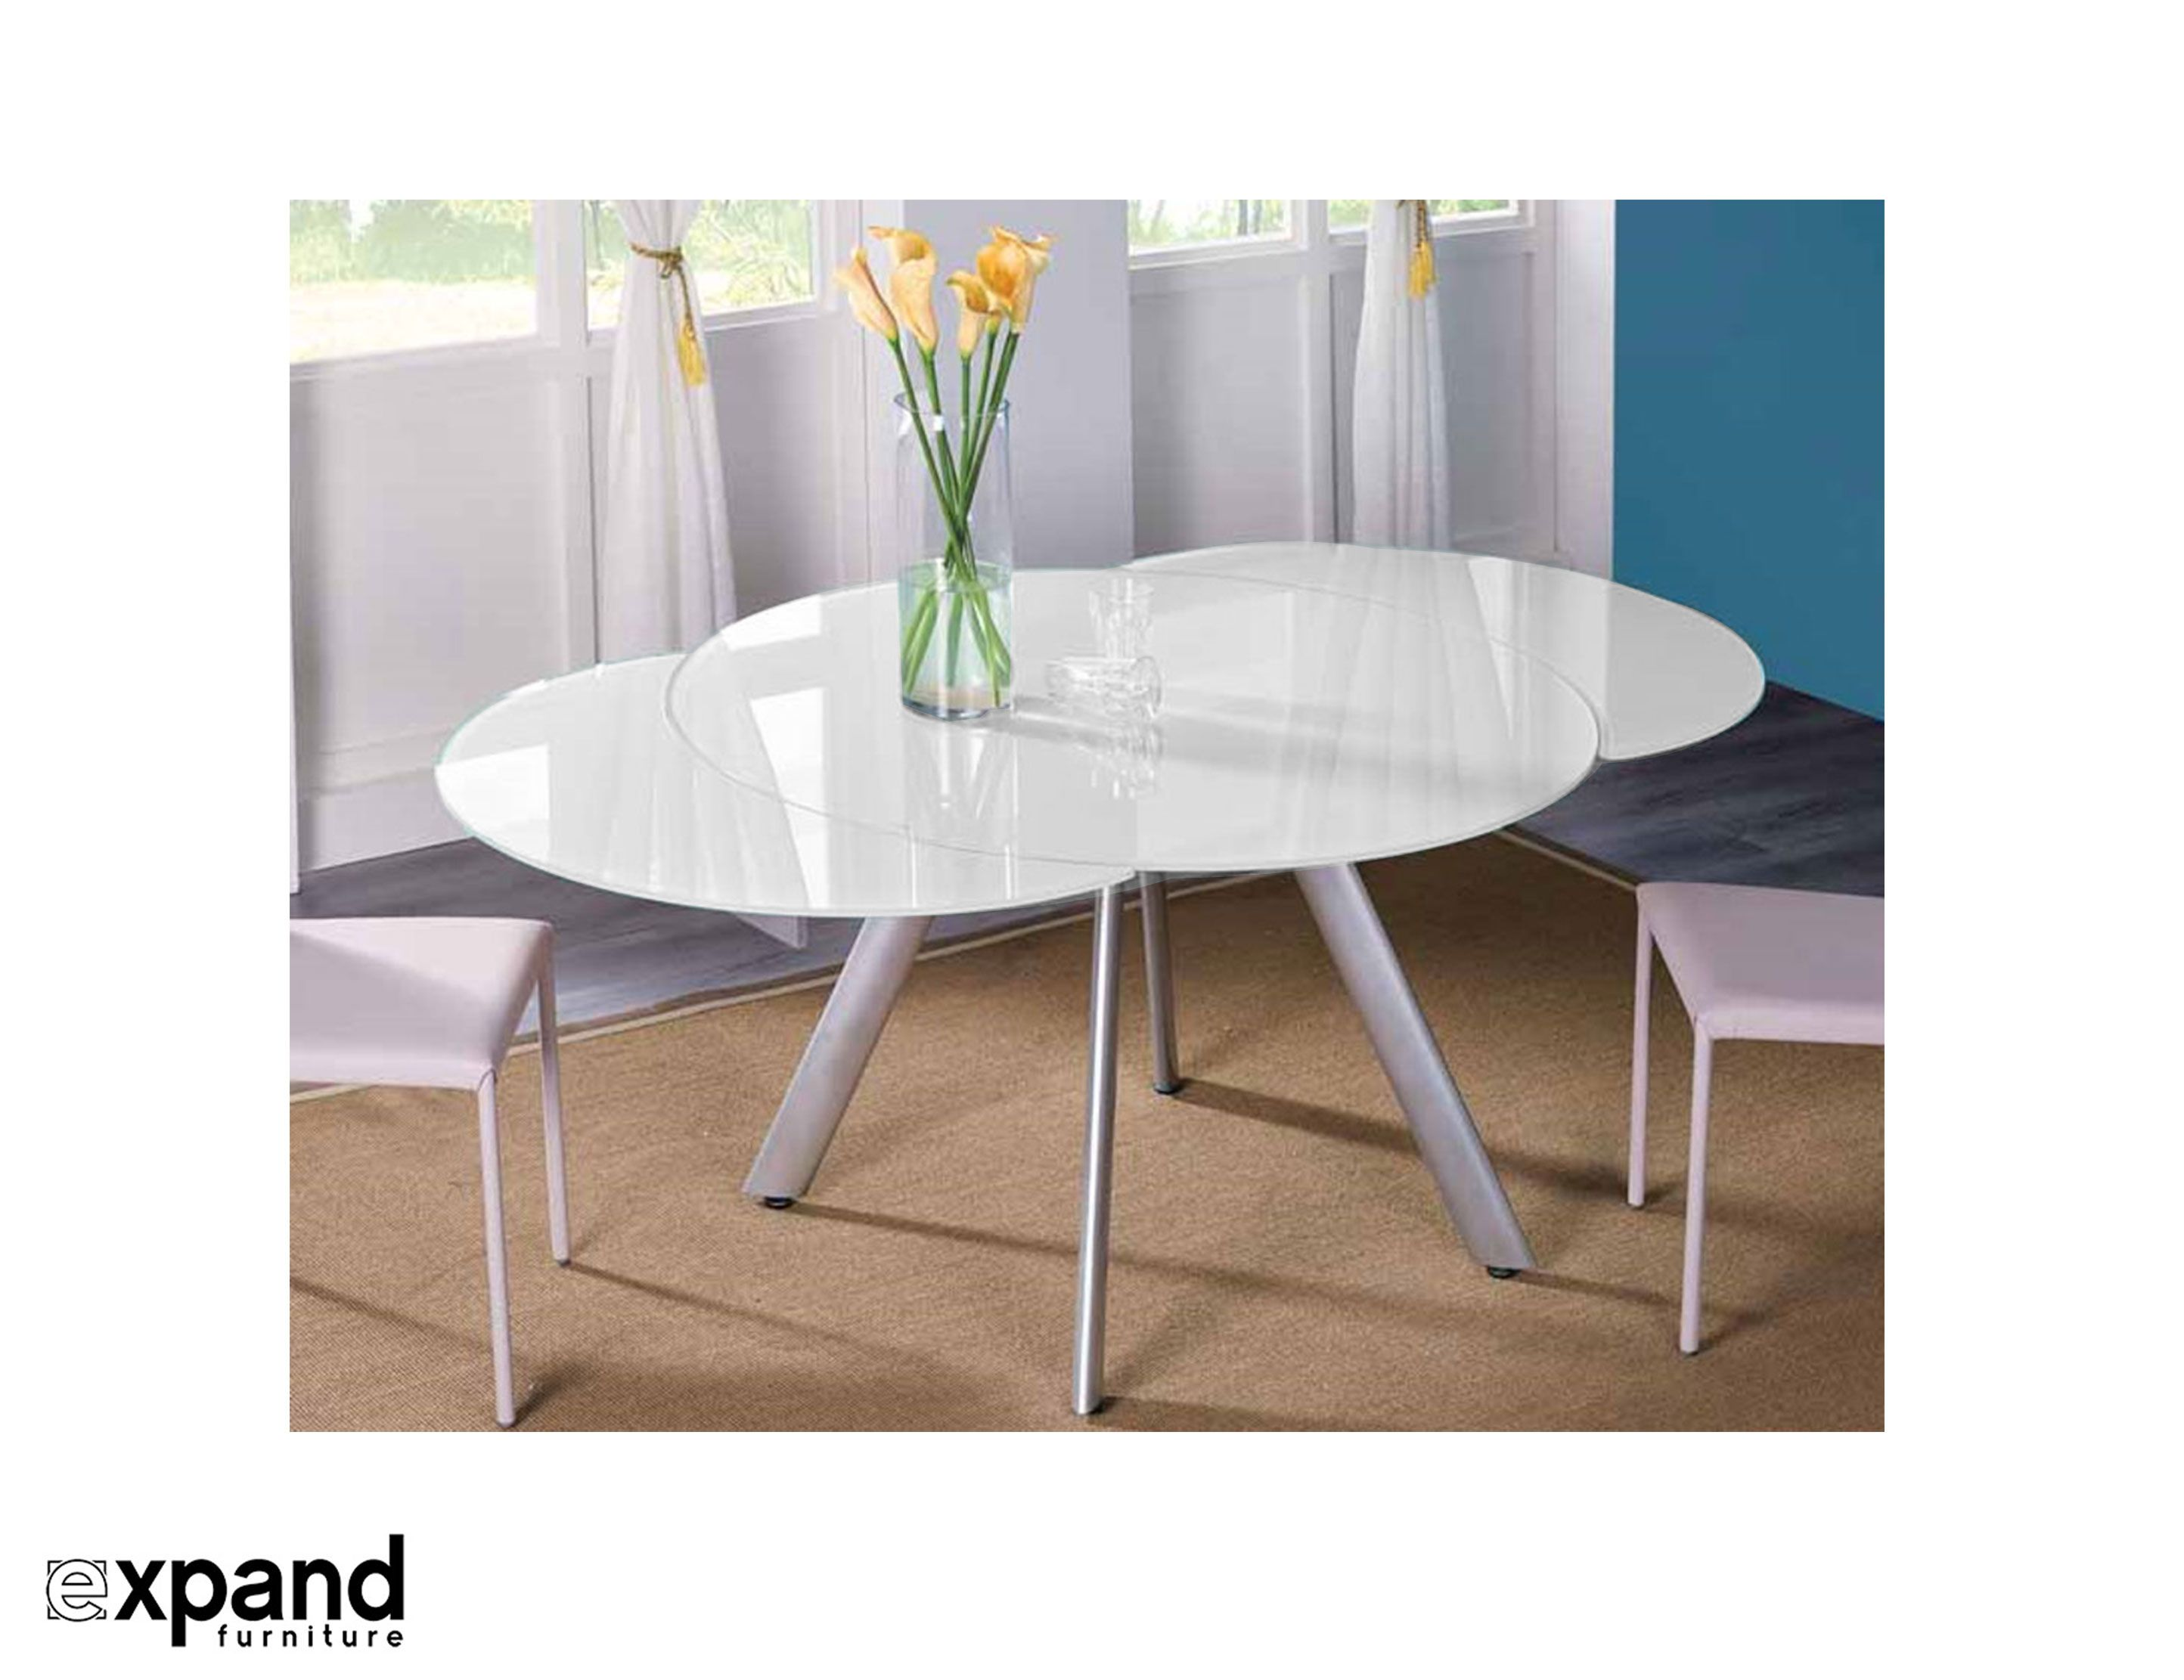 The Butterfly Expandable Round glass Dining Table extends its